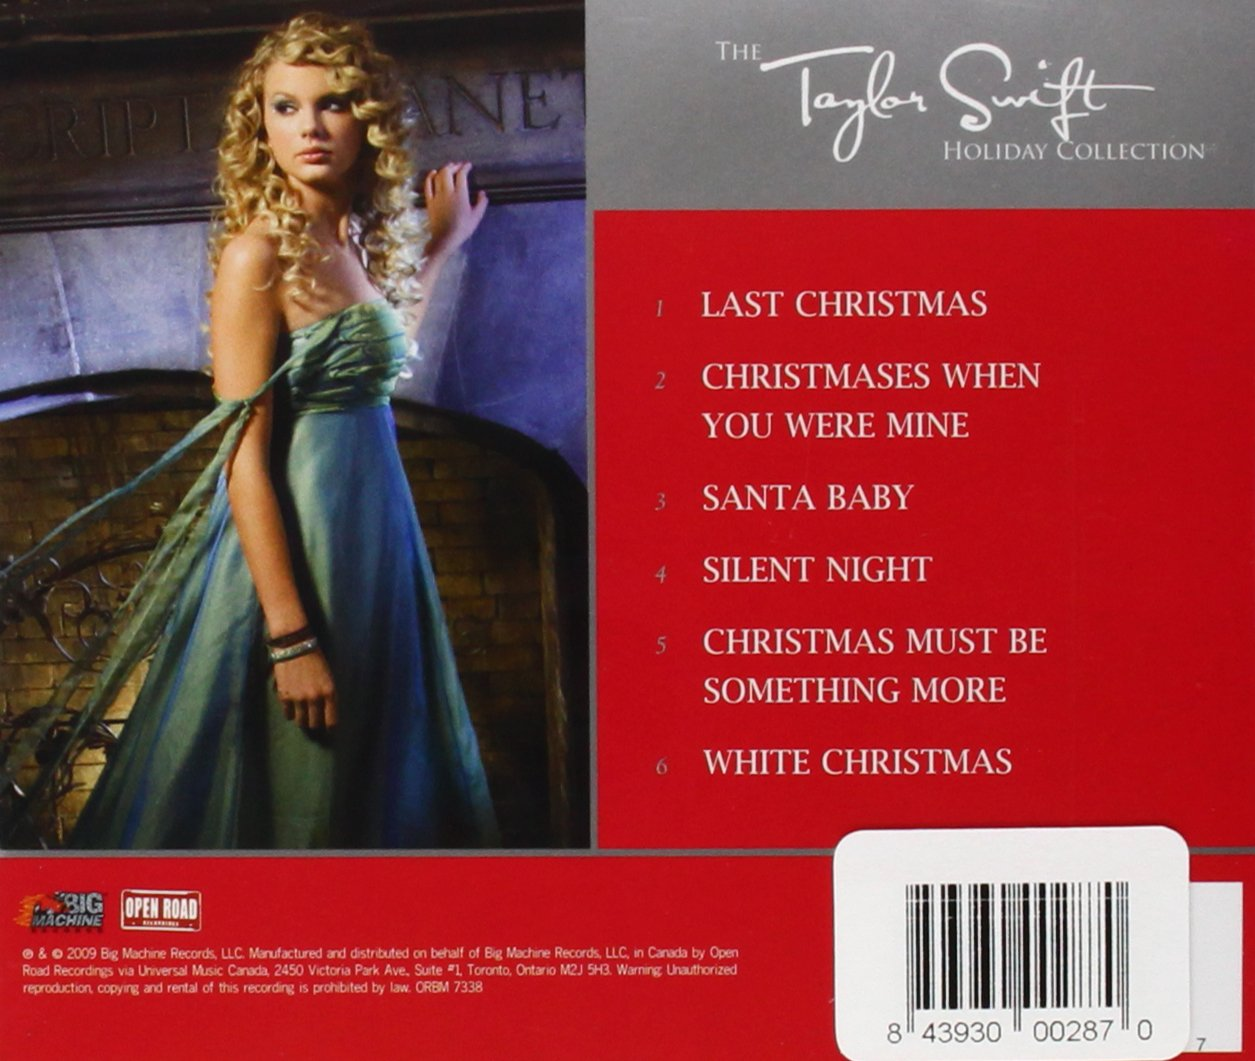 Taylor Swift - The Taylor Swift Holiday Collection - Amazon.com Music